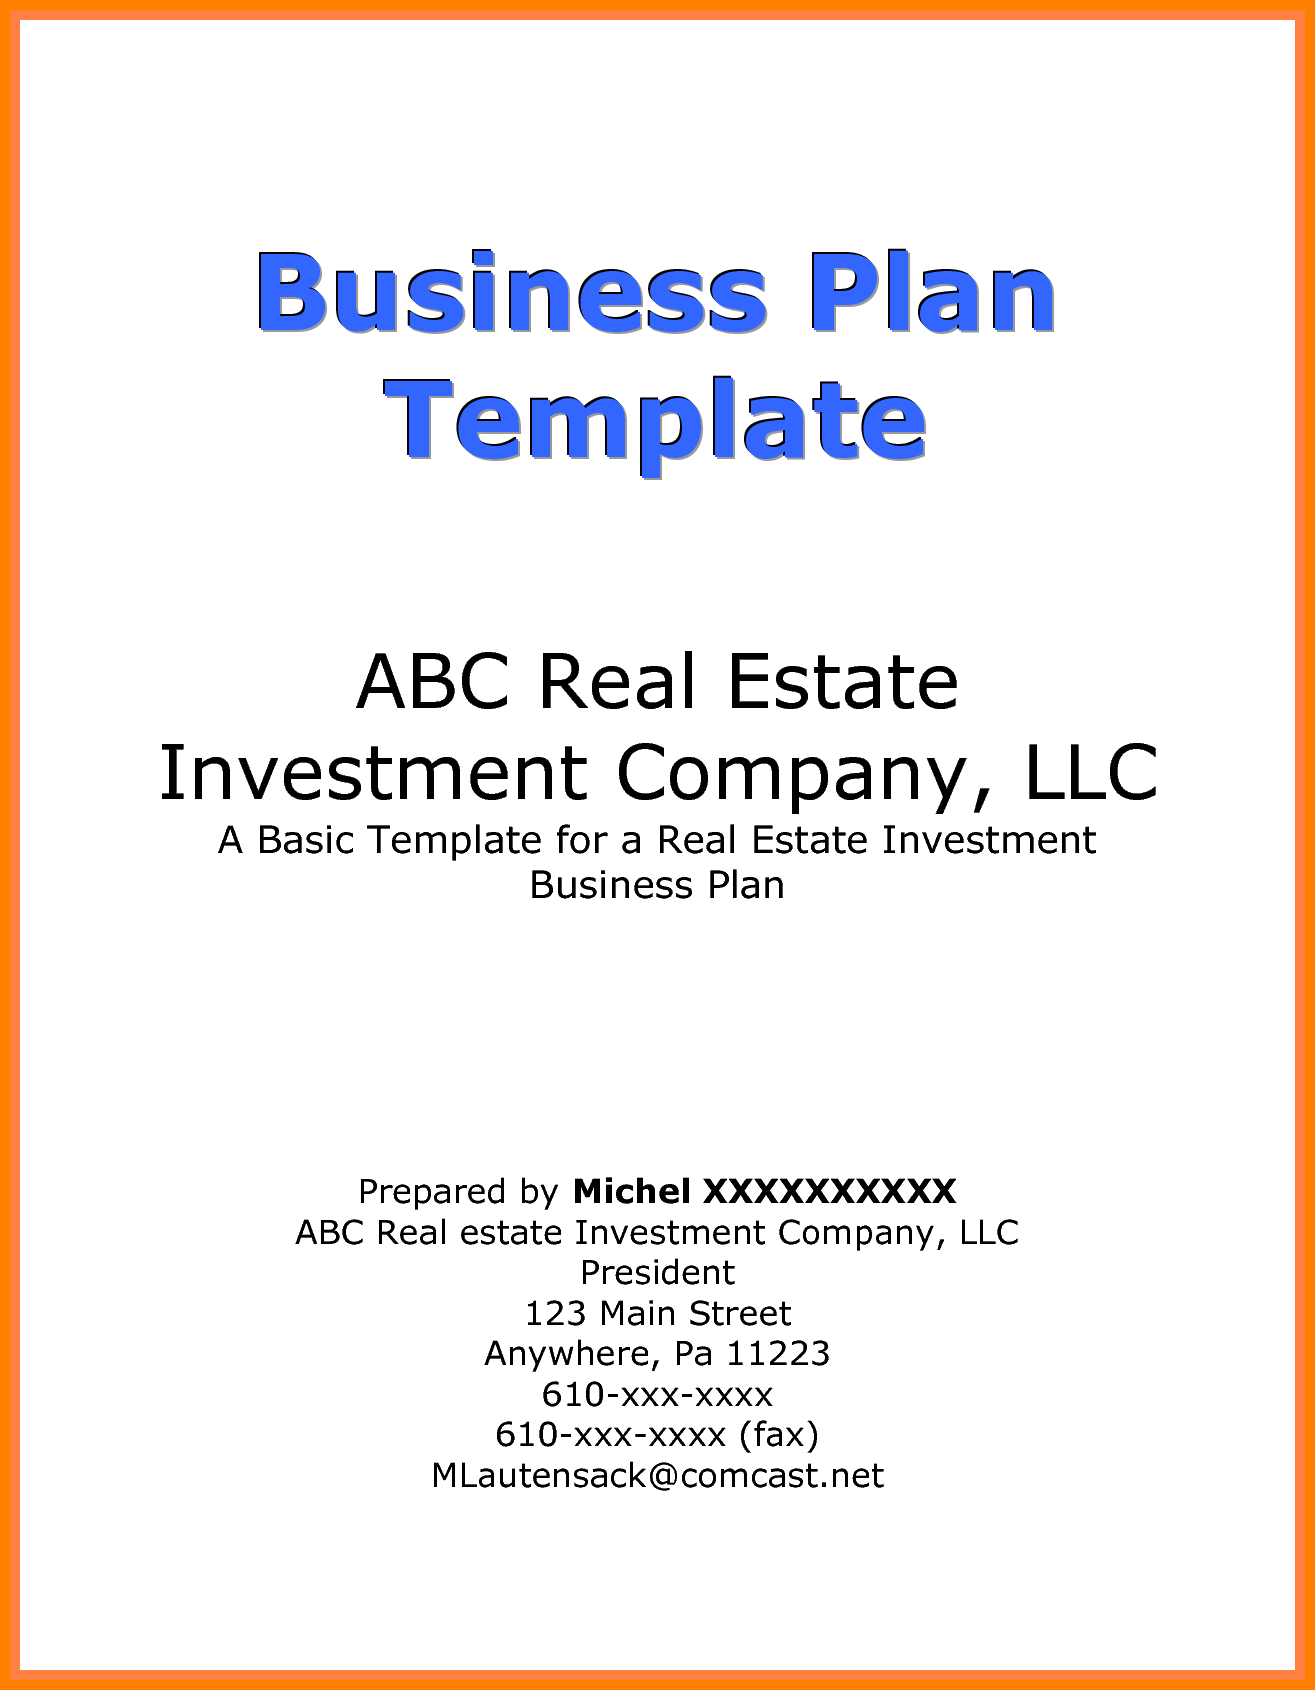 5 pictures of business plan cover page address exle news to go 2 5 pictures of business plan cover page address exle fbccfo Images